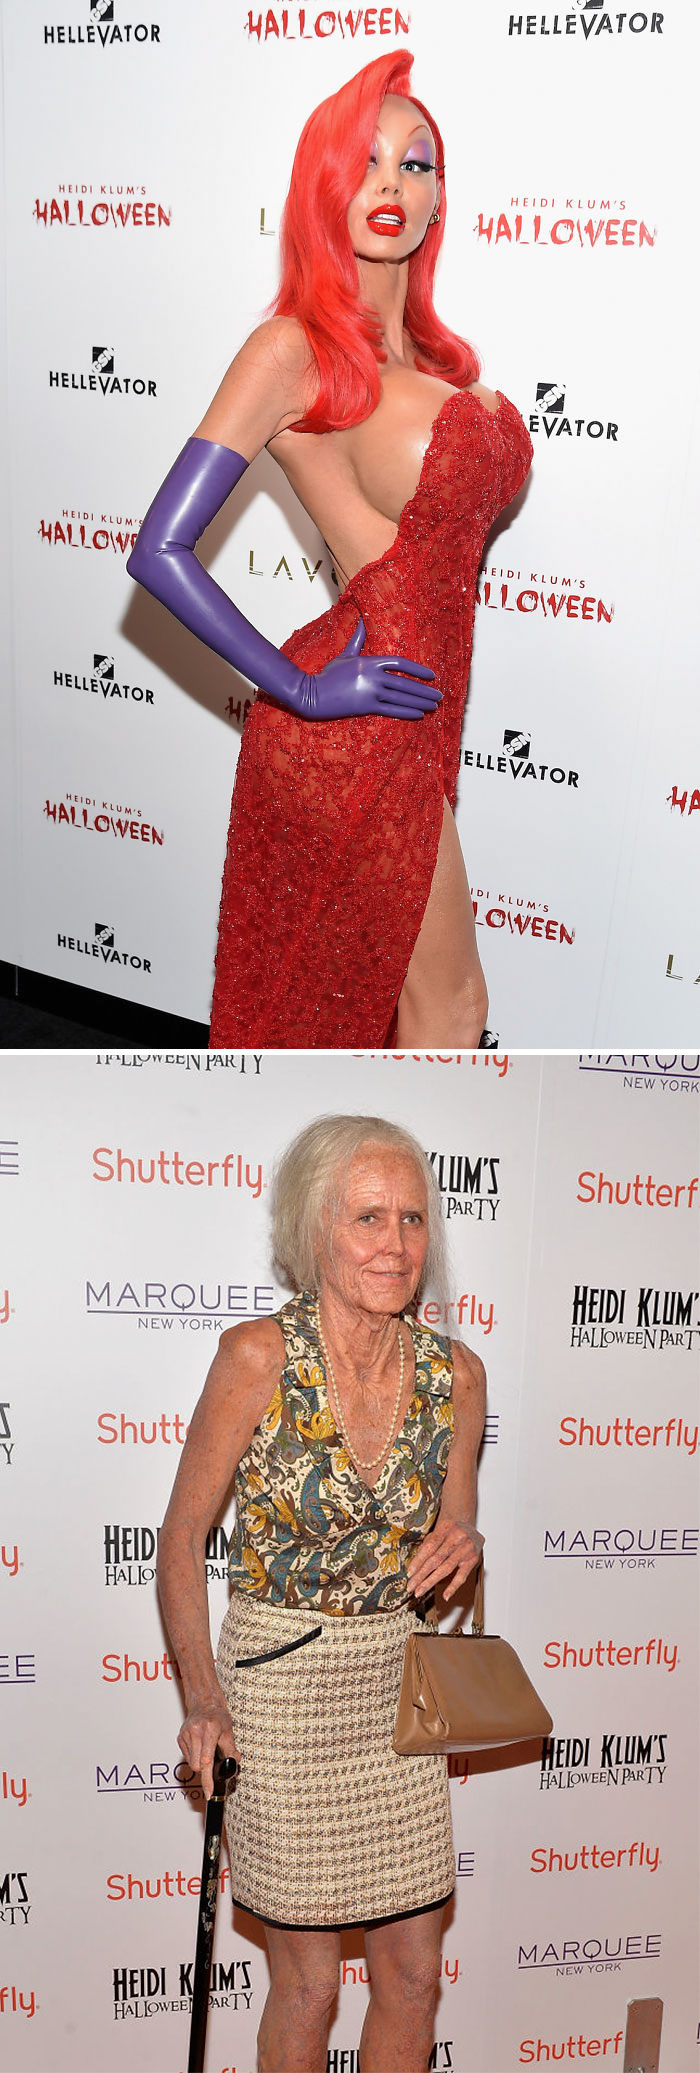 Heidi Klum As Jessica Rabbit And 95-Year-Old Heidi